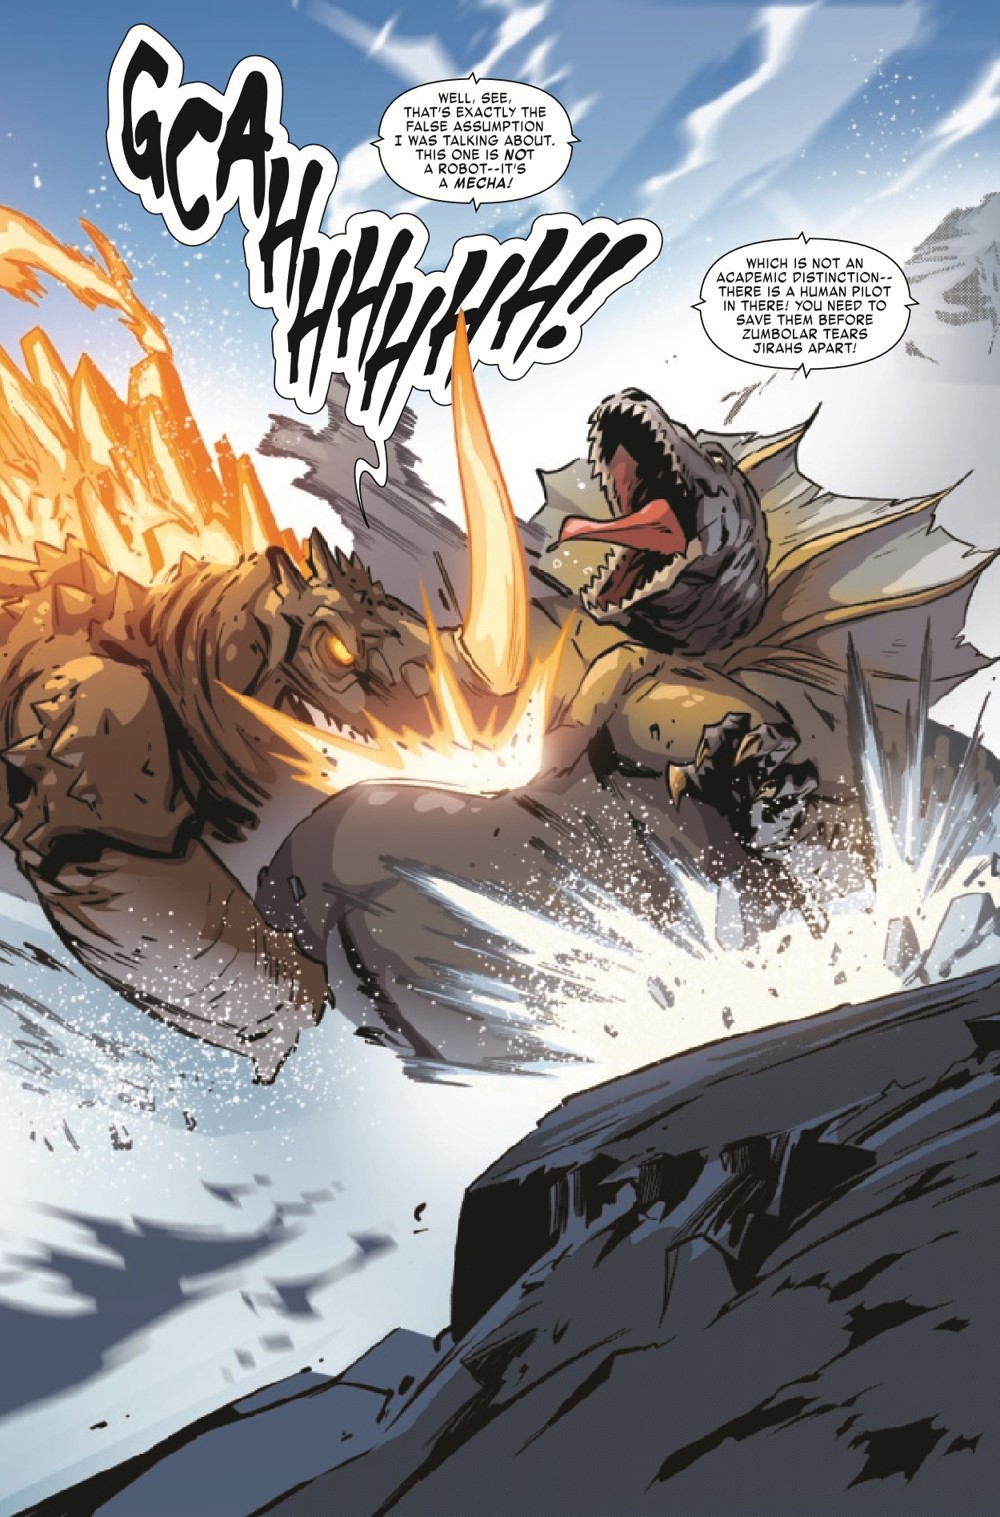 ULTRAMANTRIALS2021005_Preview-5 ComicList Previews: THE TRIALS OF ULTRAMAN #5 (OF 5)